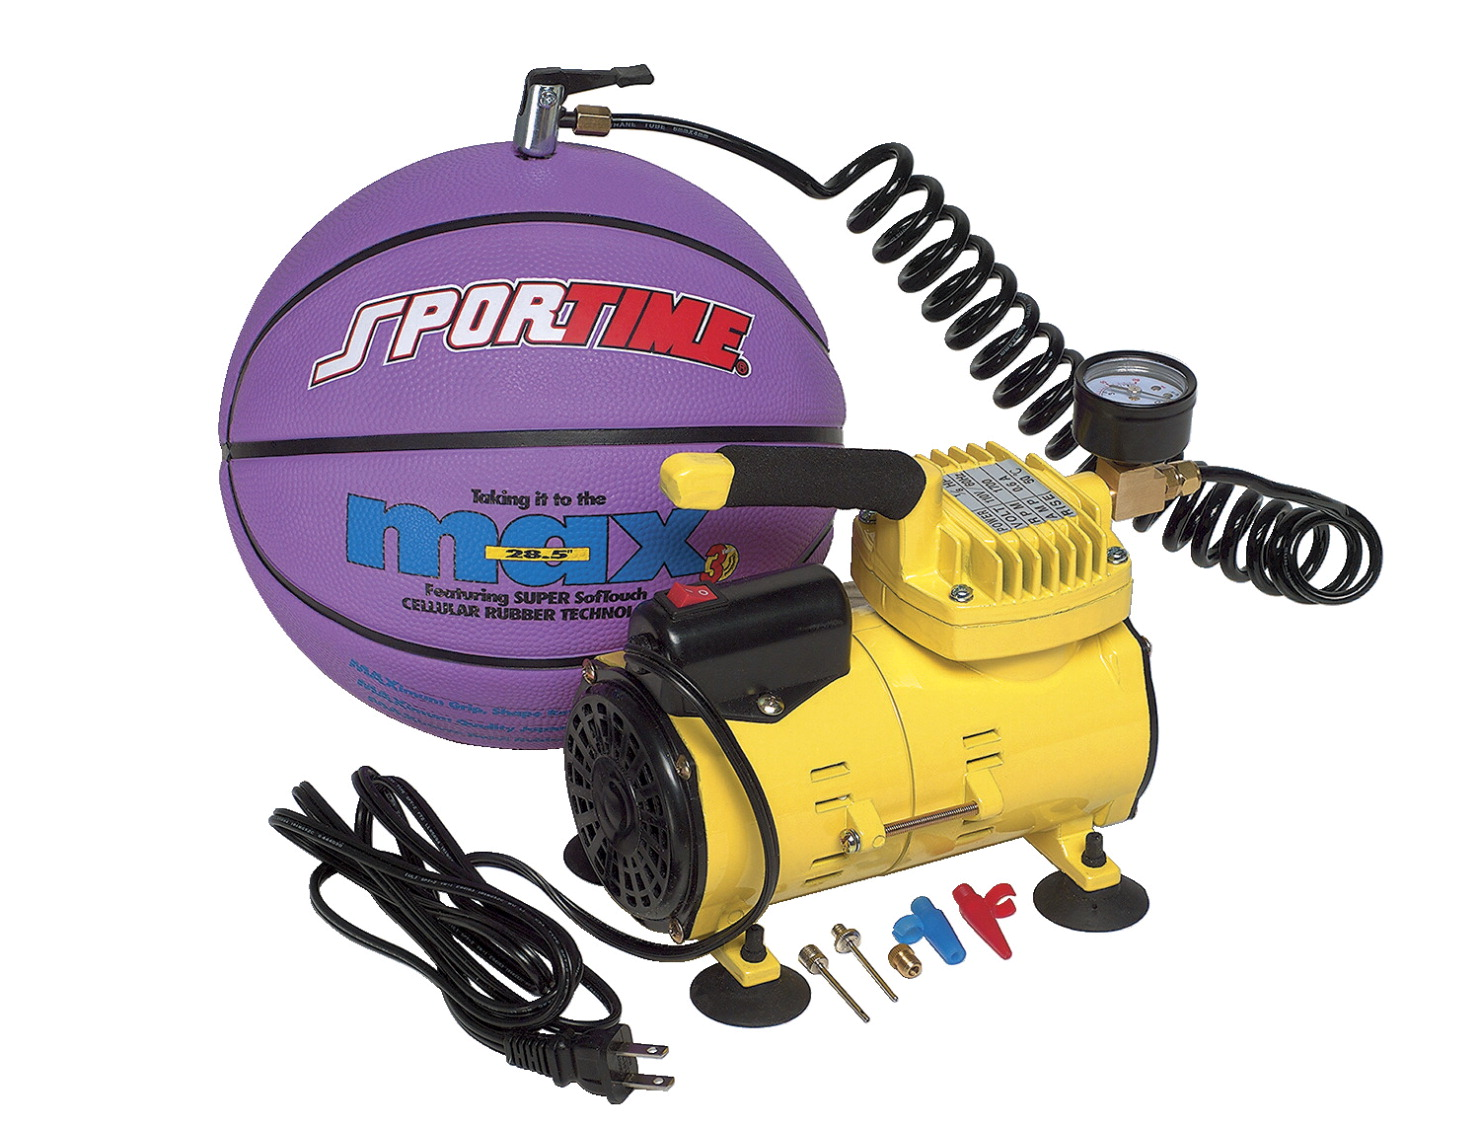 Sportime Heavy-Duty Electric Inflator, Yellow